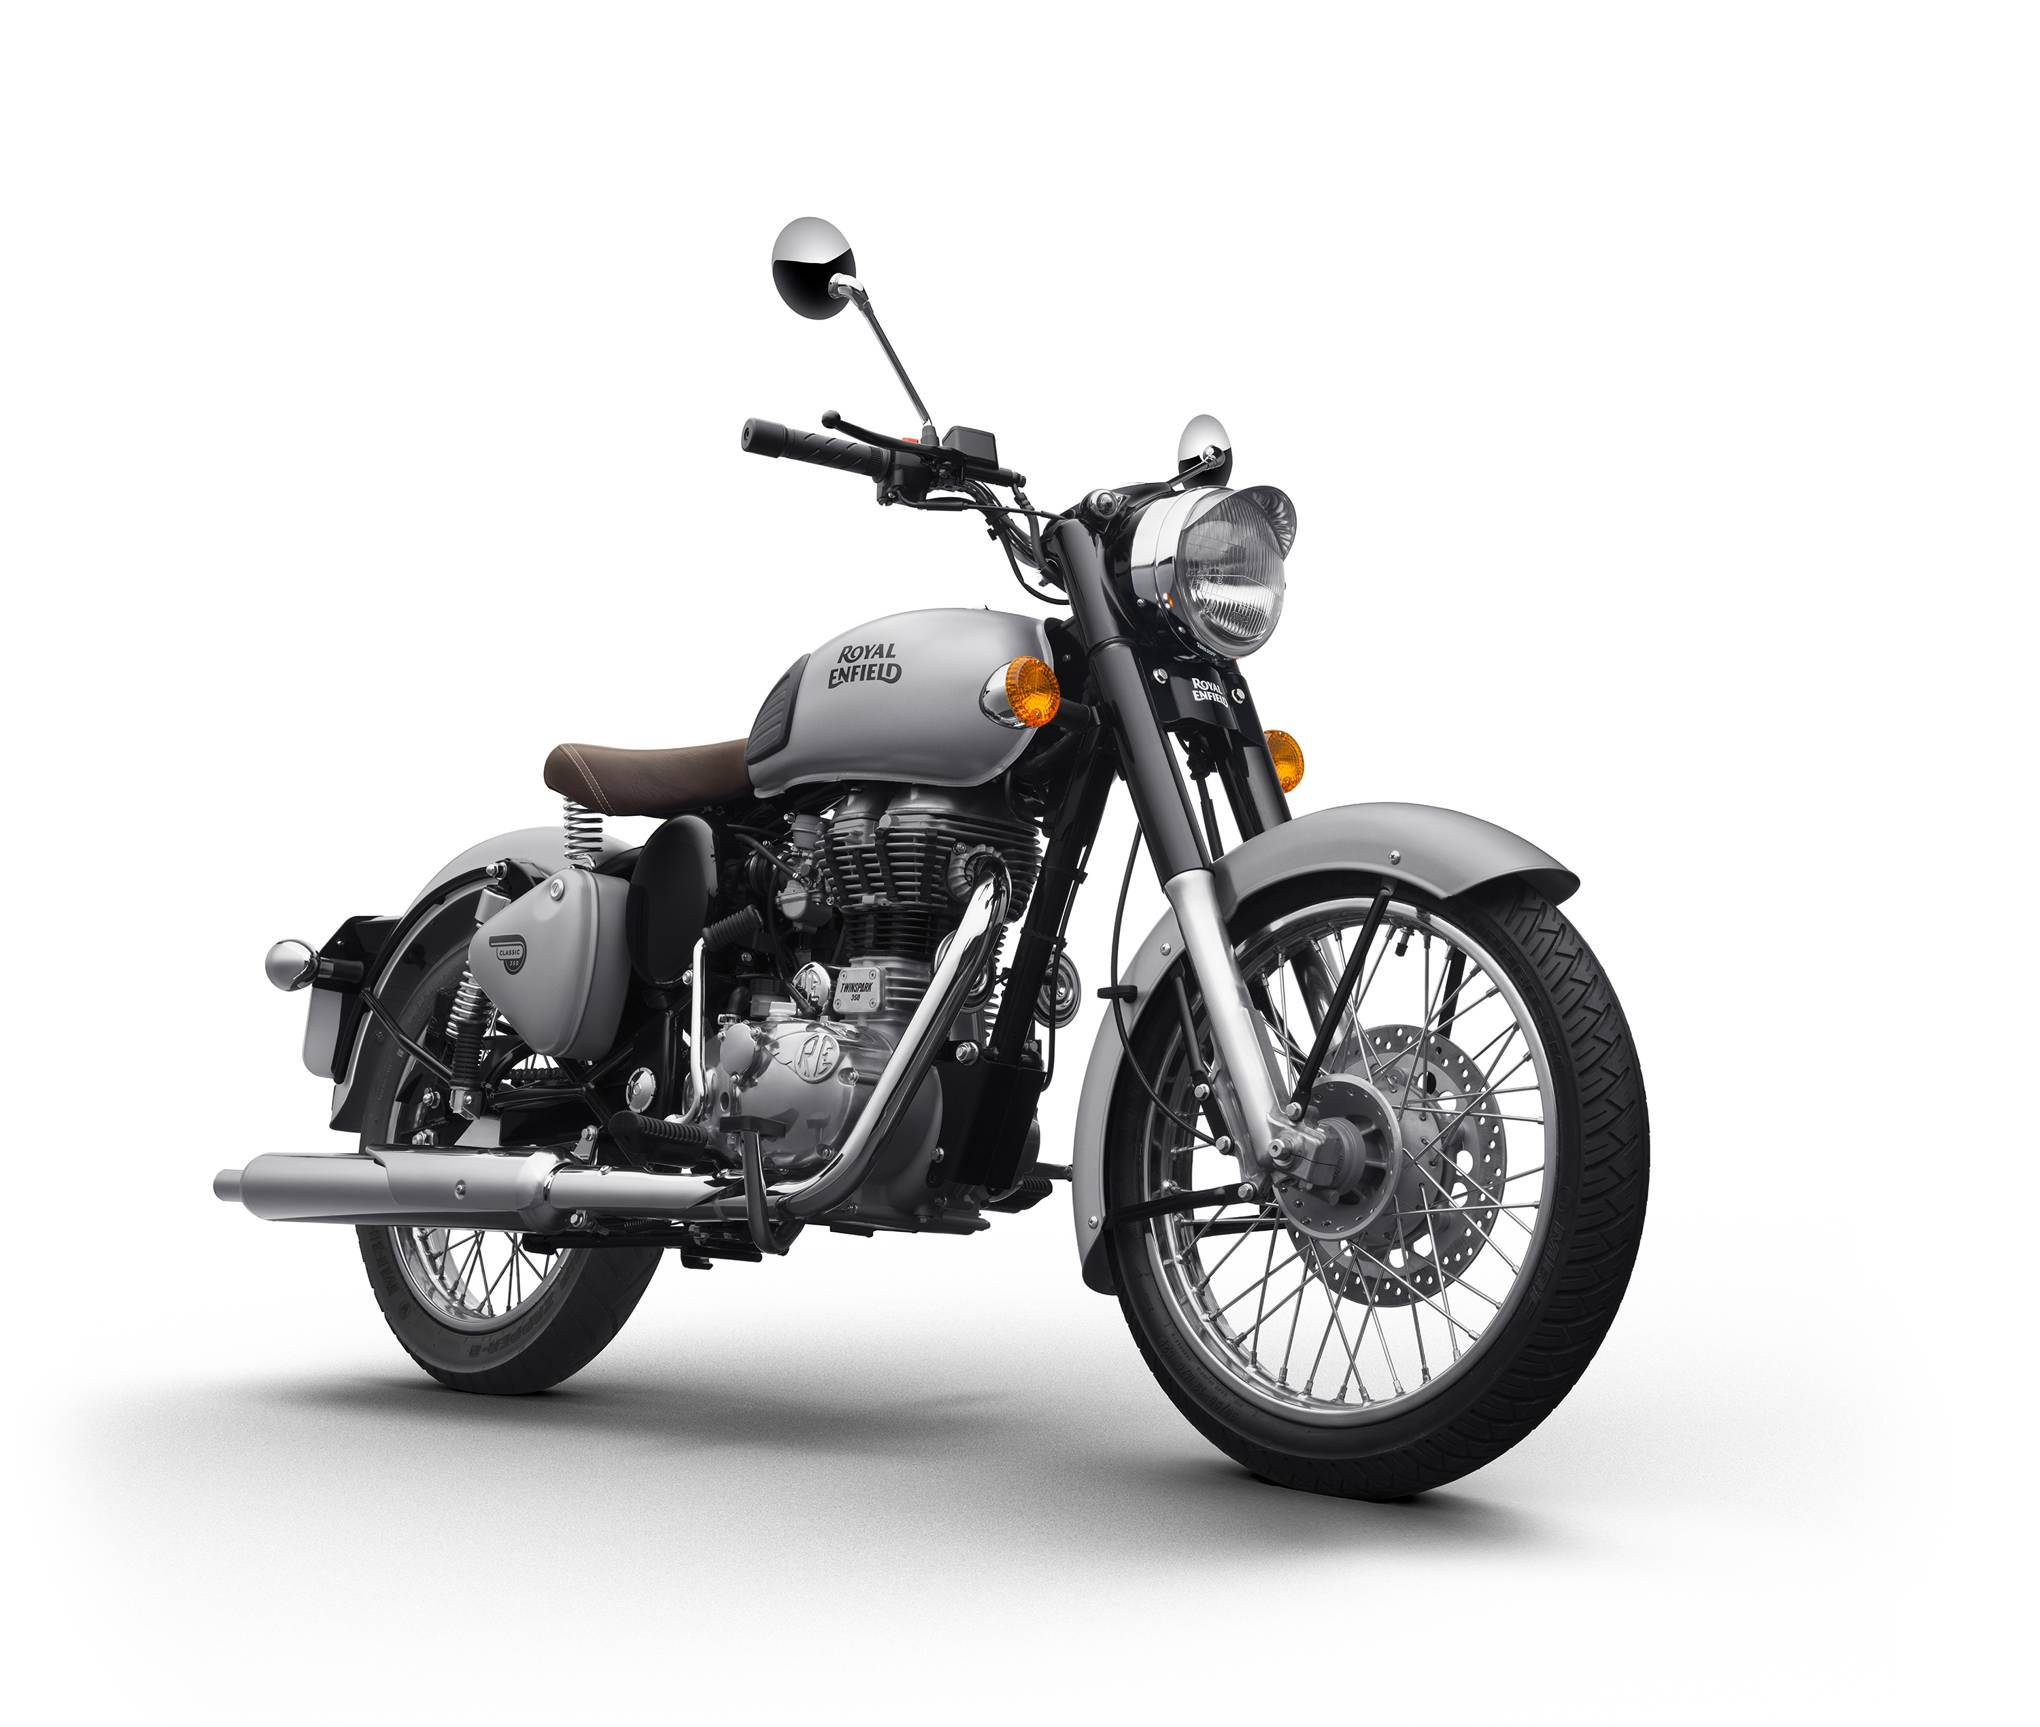 Royal enfield motorcycles review